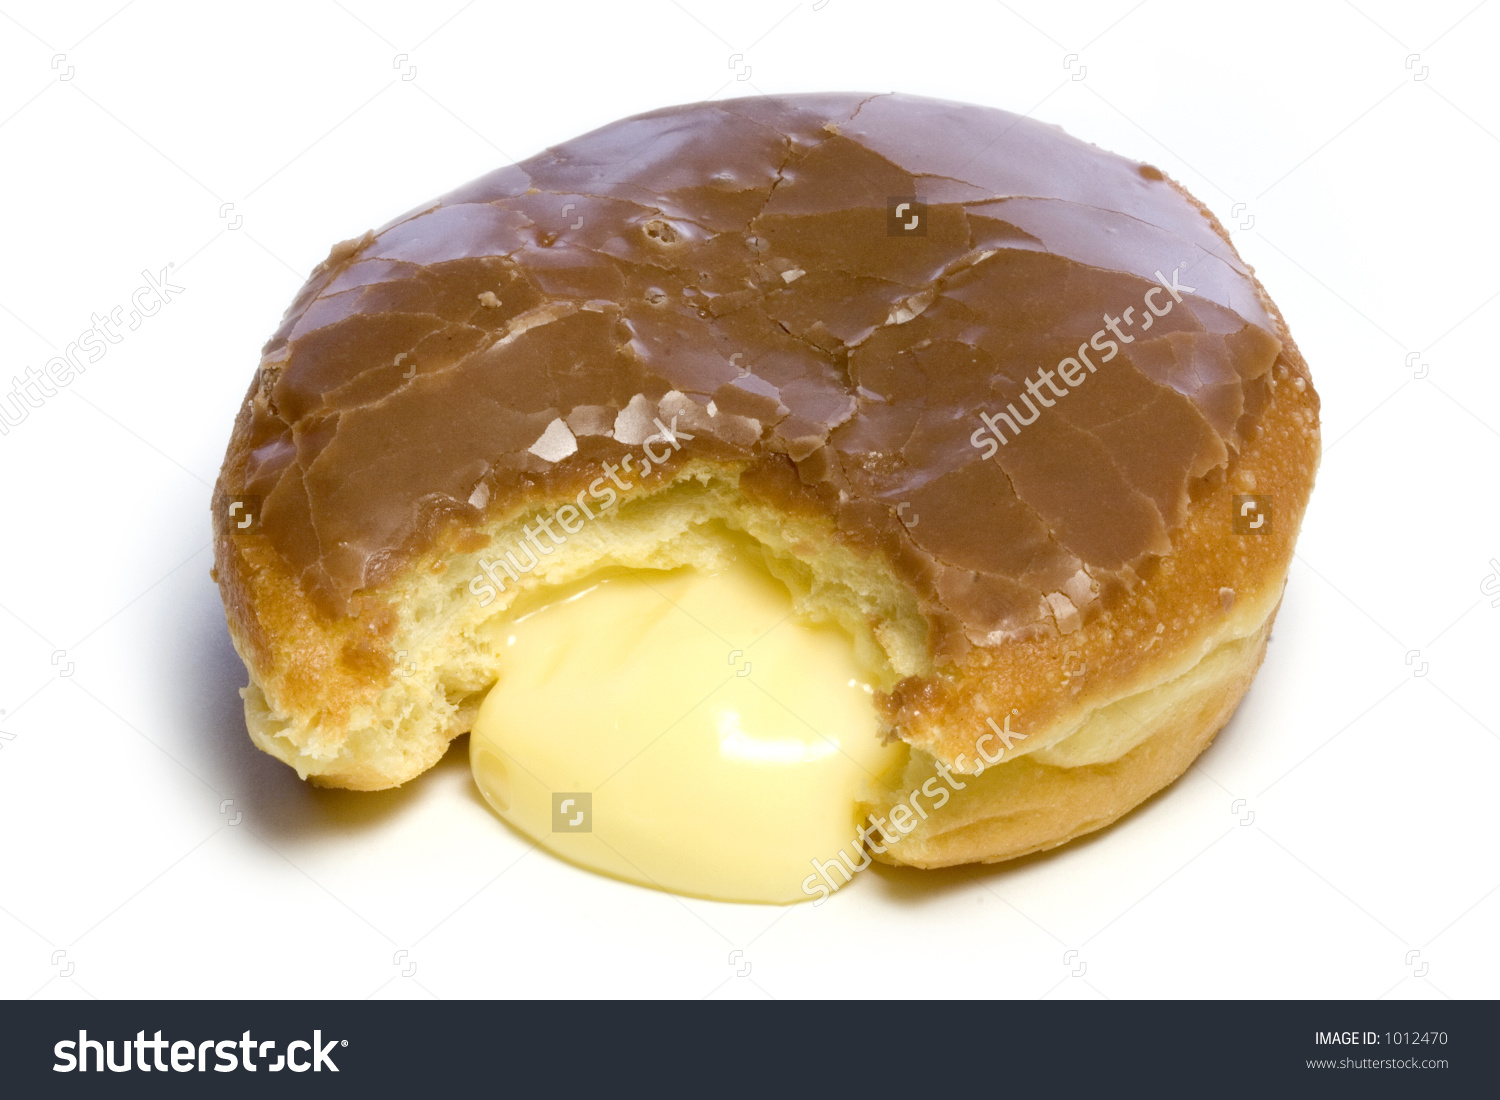 Cream filled donut clipart banner library download Cream Filled Donut Stock Photo 1012470 : Shutterstock banner library download